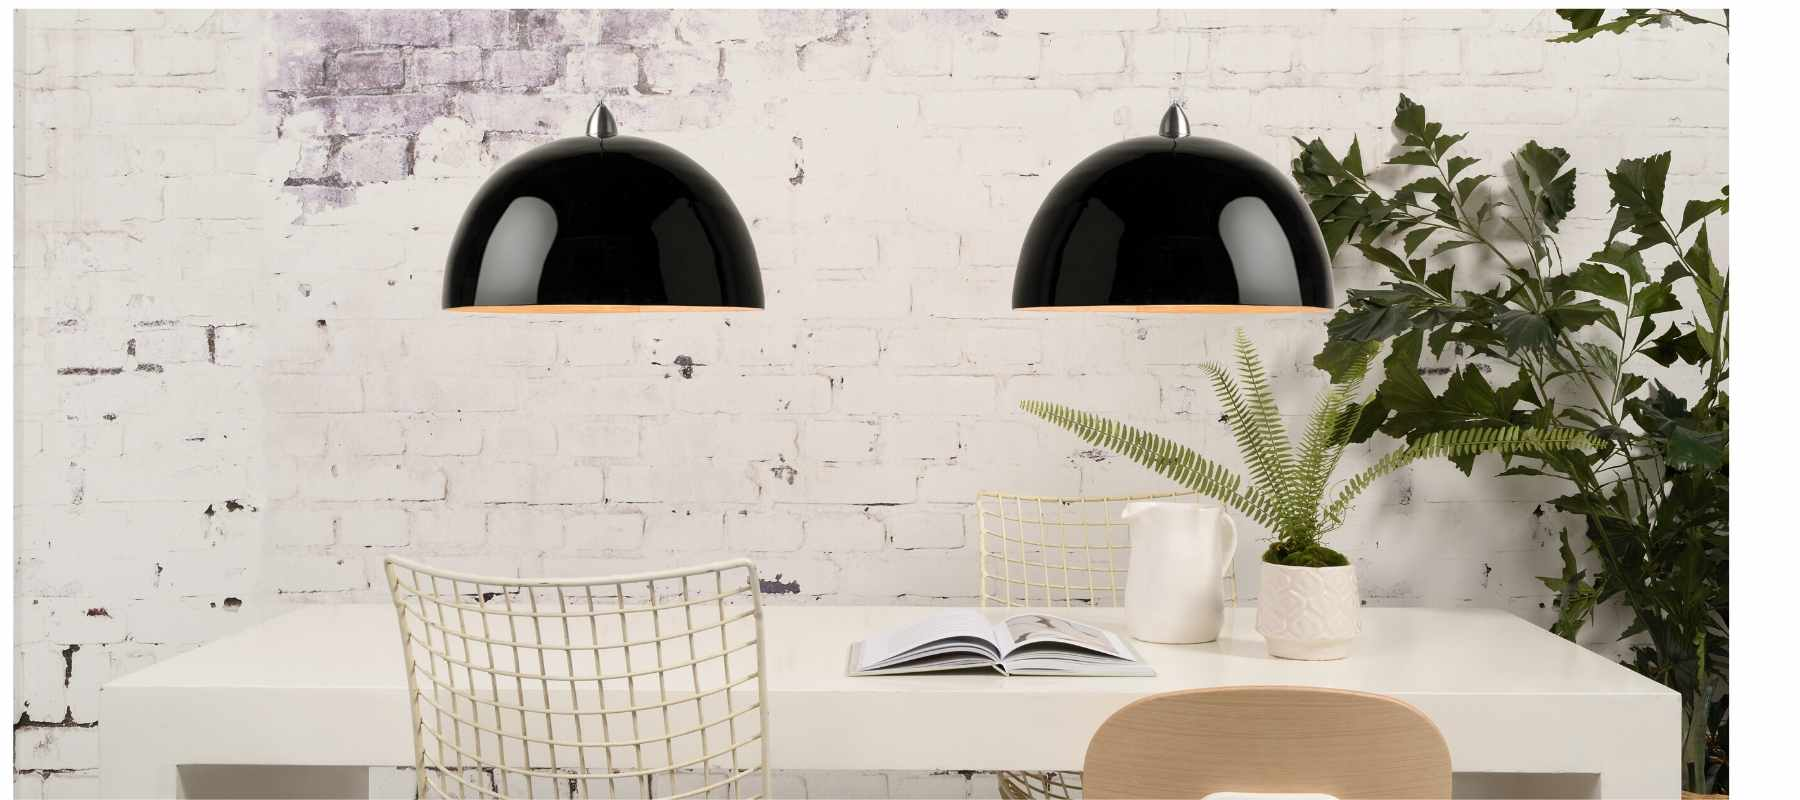 Black double pendant lighting with white exposed brick wall